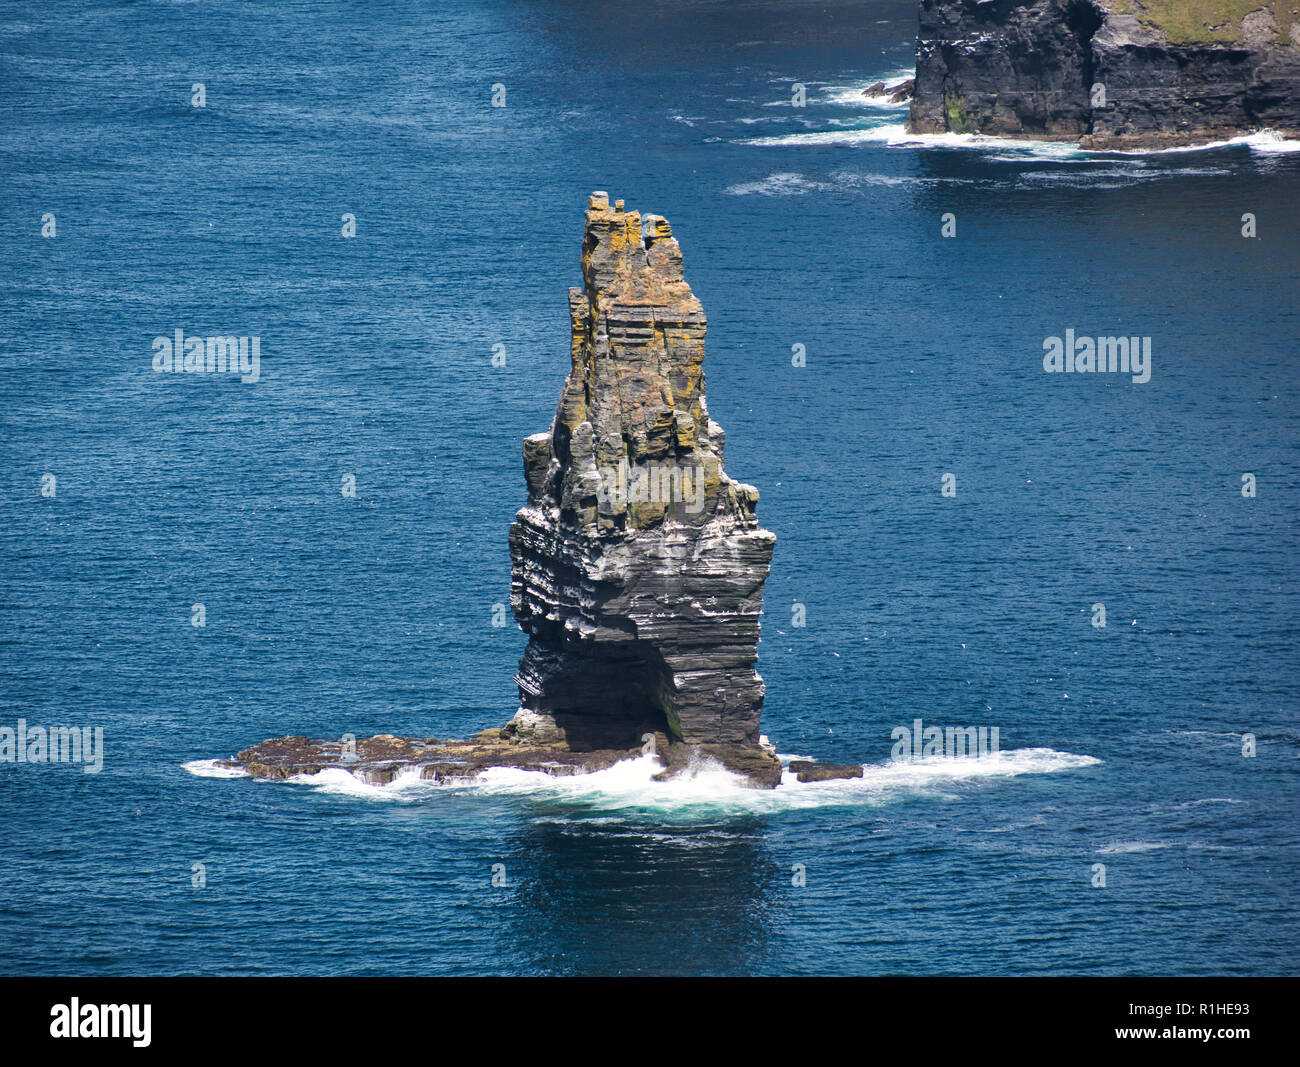 Standing Rock in the Atlantic Ocean near Ireland at the Cliff of Moher Stock Photo